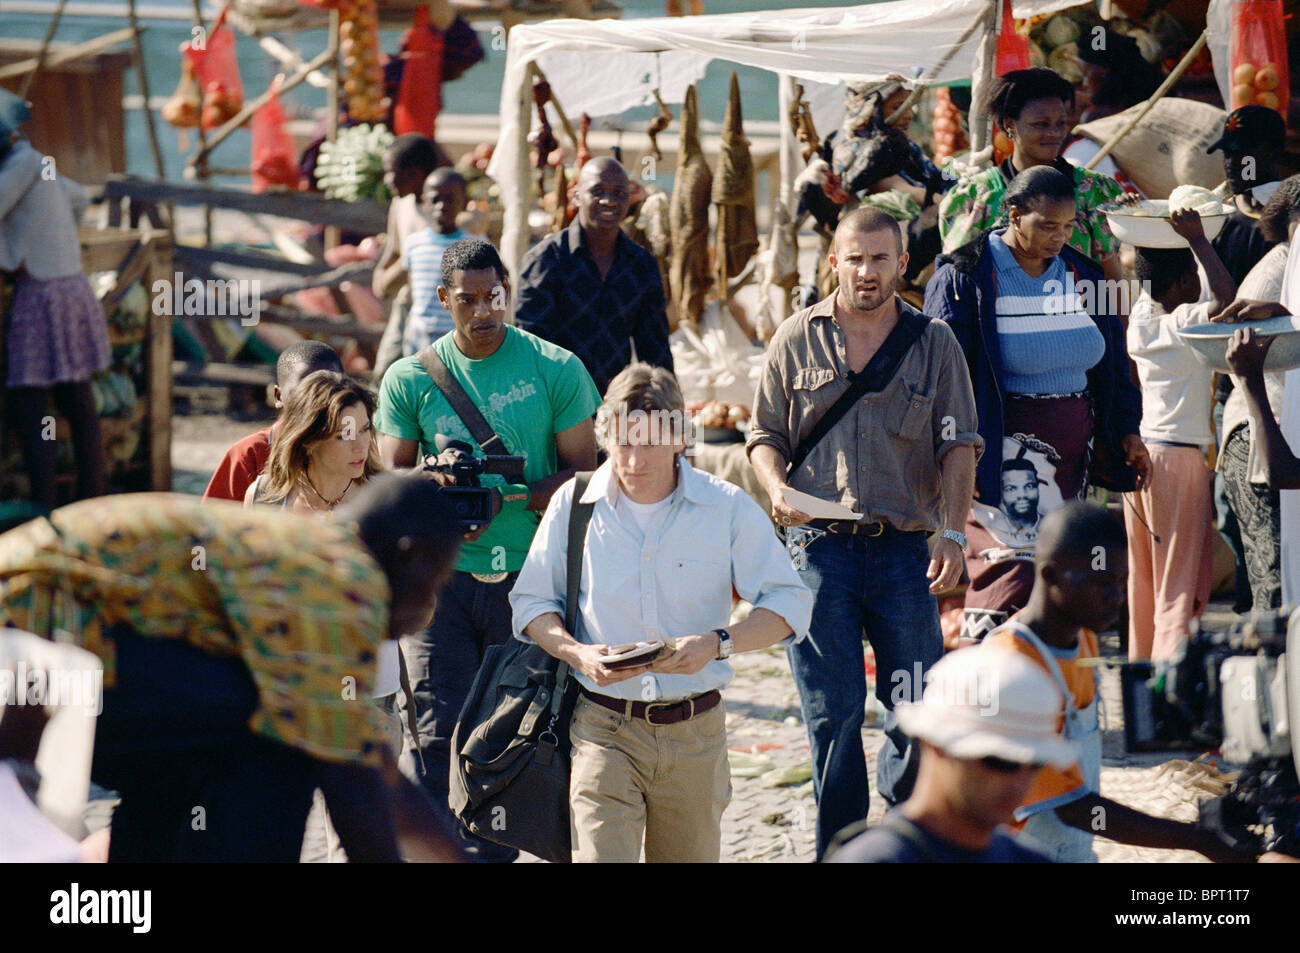 BROOKE LANGTON ORLANDO JONES GIDEON EMERY & DOMINIC PURCELL PRIMEVAL (2007) - Stock Image